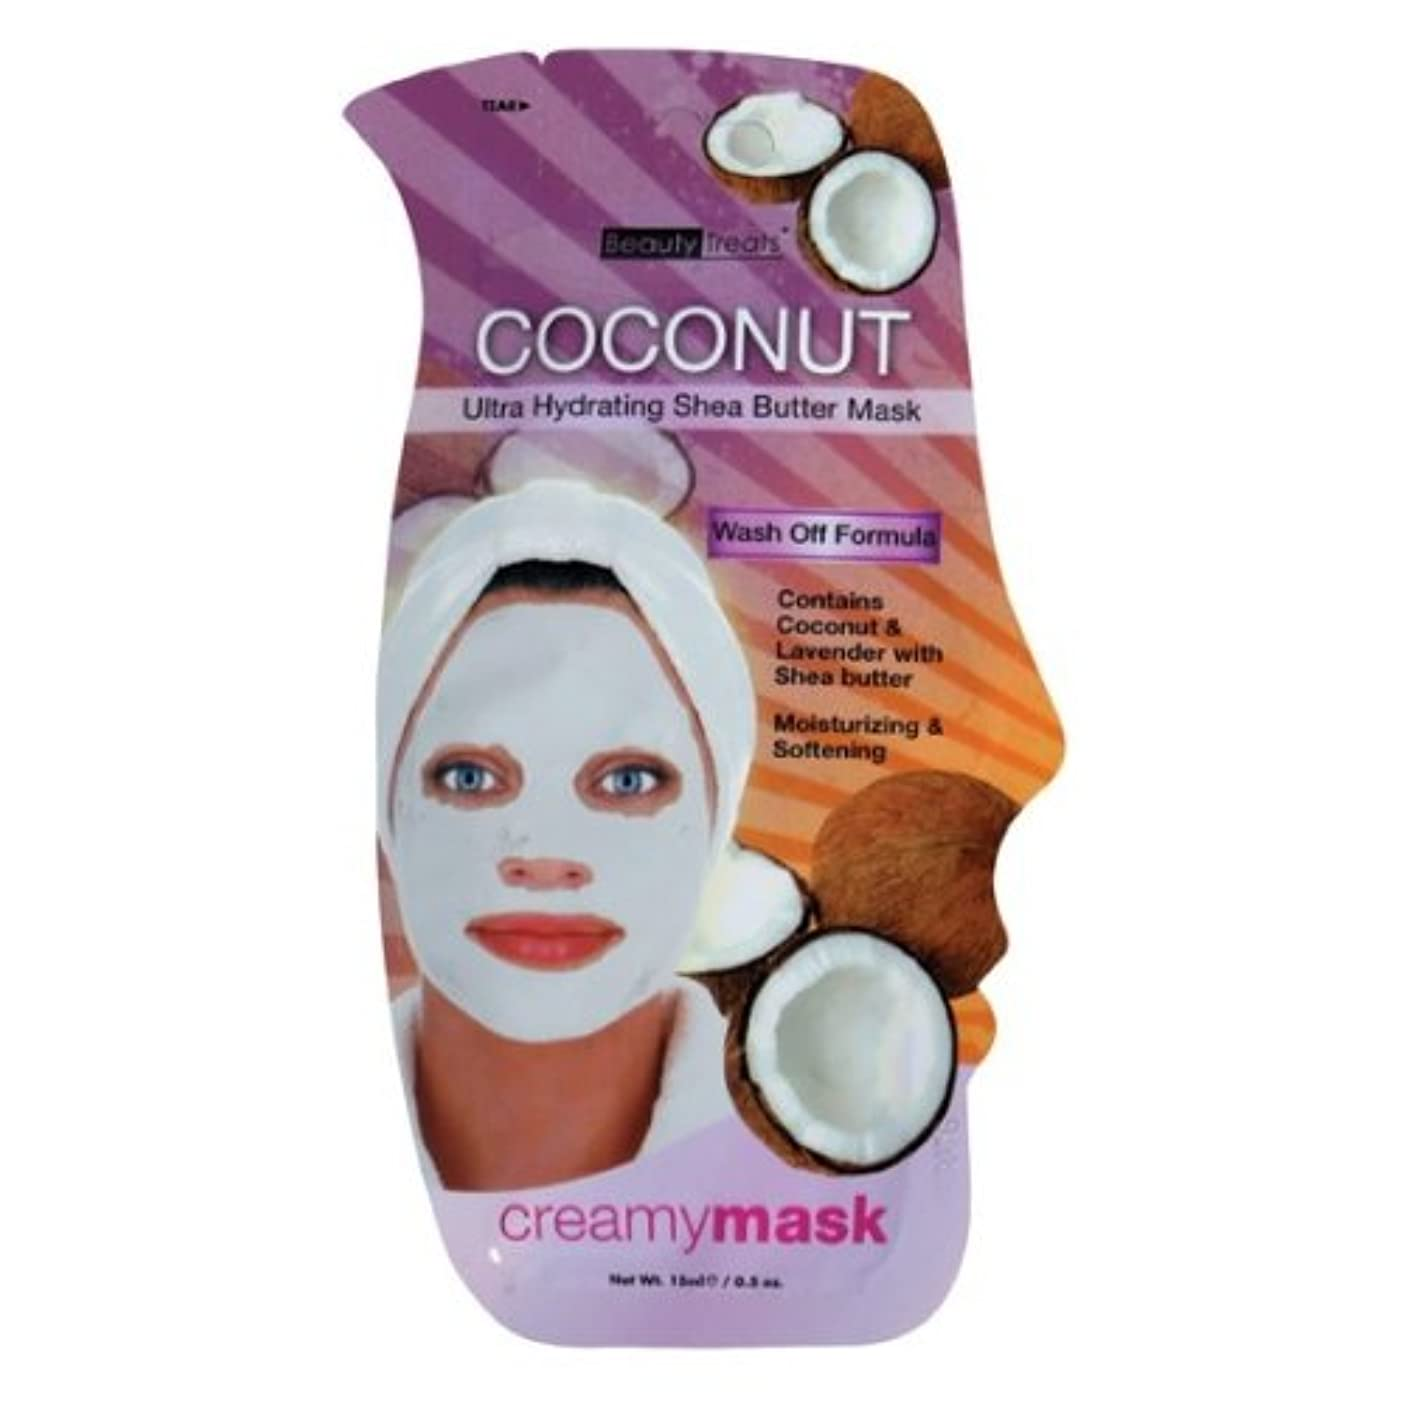 ペチコート太平洋諸島一緒に(6 Pack) BEAUTY TREATS Coconut Ultra Hydrating Shea Butter Mask - Coconut (並行輸入品)